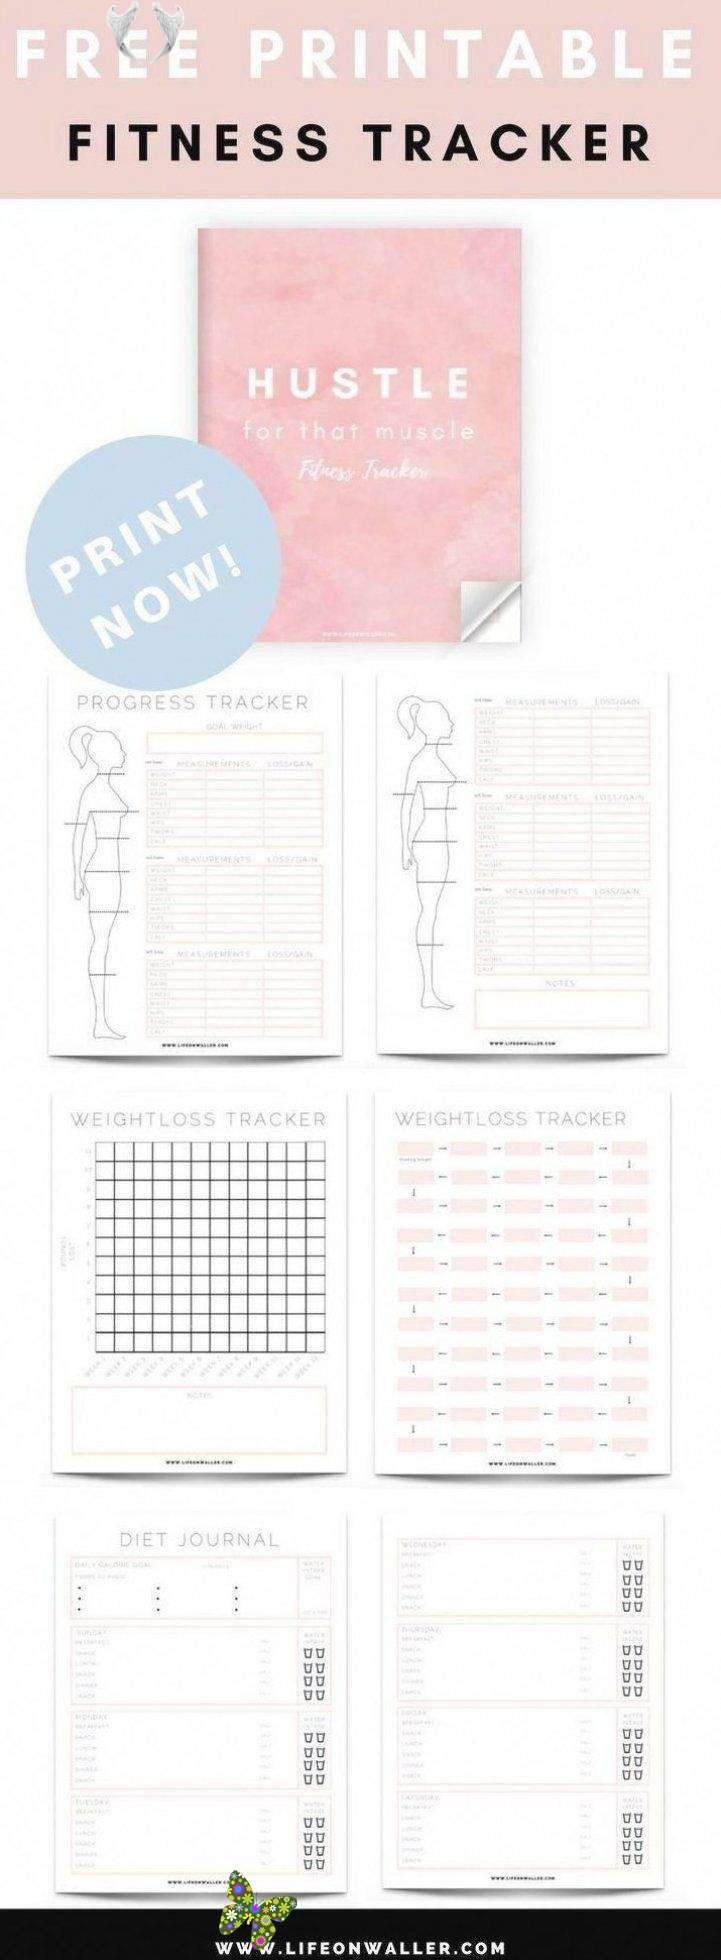 Why Try To Be An Interior Designer Fitness Ideas Blog 7 Page Free Printable Pdf Fitness Tracker Progress Tracker Weight Los 2020 Fitness Tracker Workout Planner